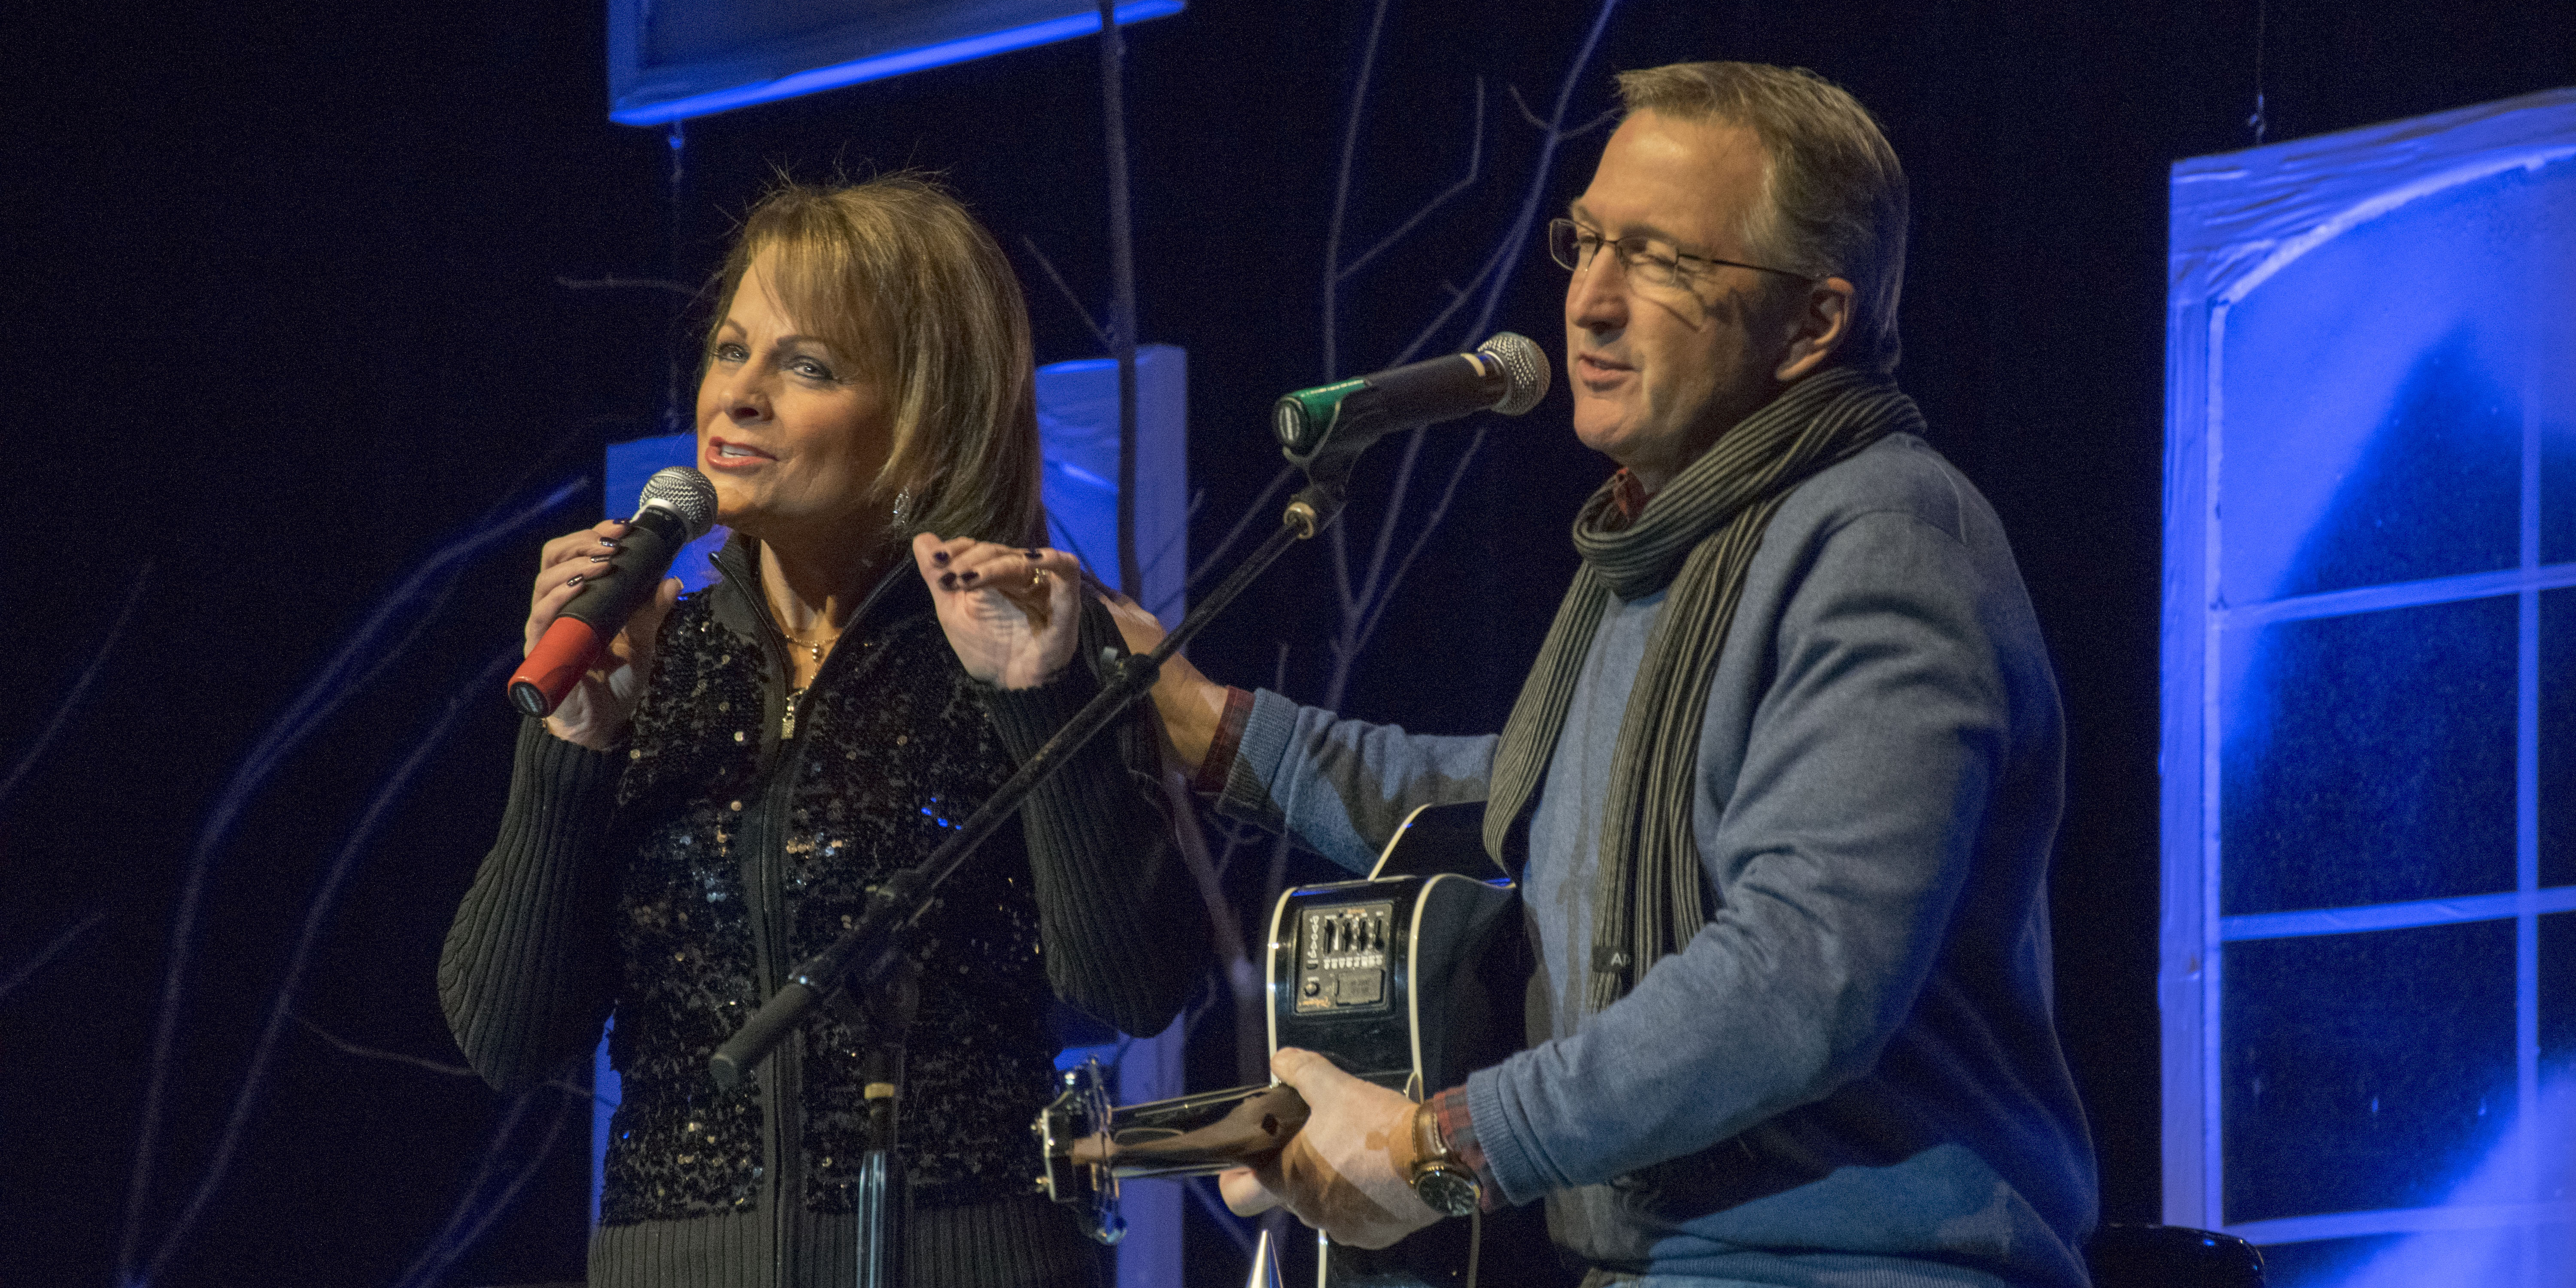 Susie McEntire and her husband Mark Eaton performed A Country Christmas at Lakeview Middle School.